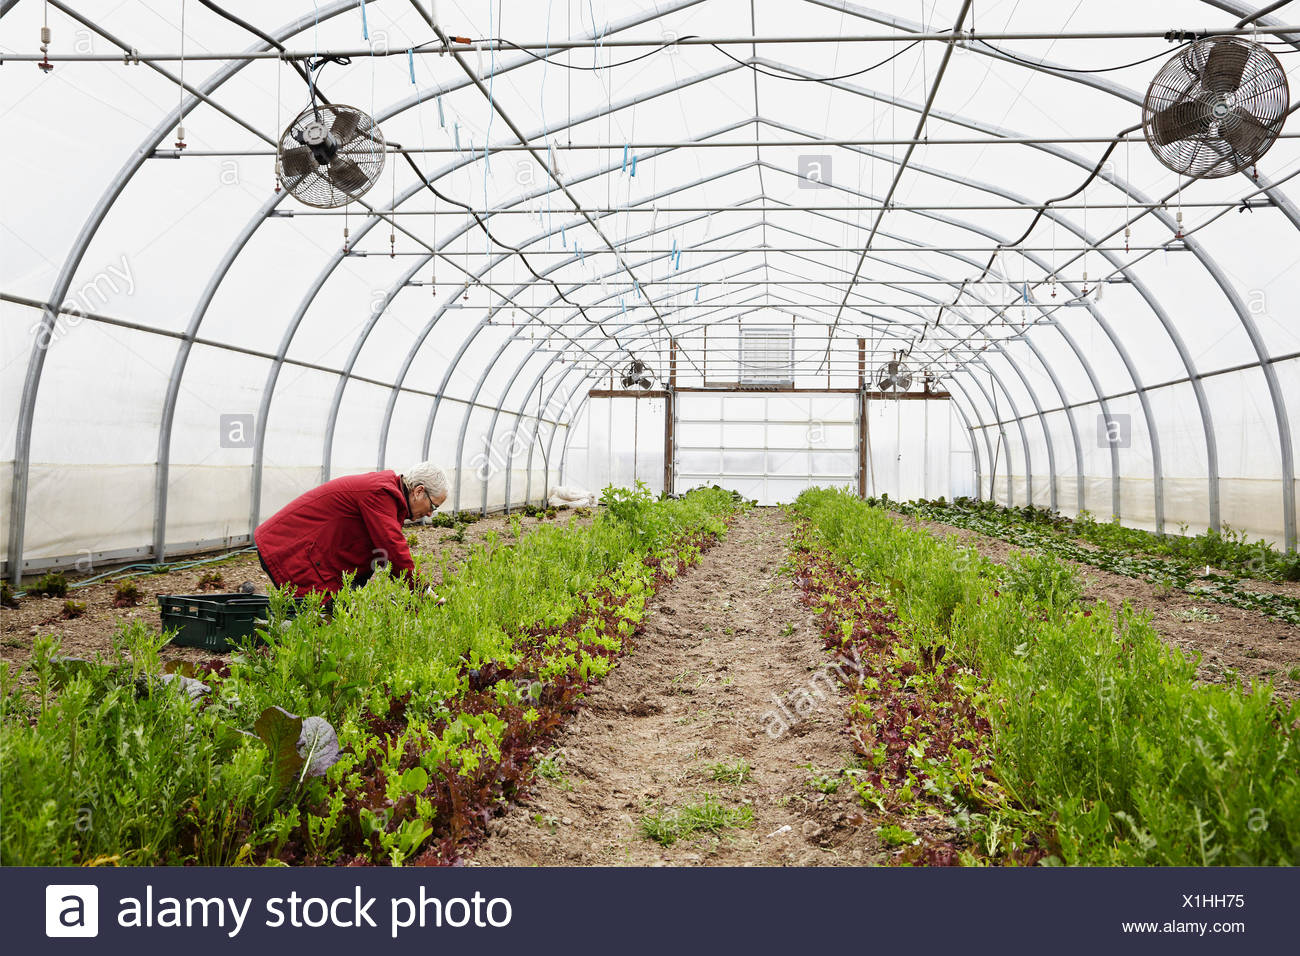 A large commercial horticultural polytunnel with fans in the ceiling, and plants growing in the soil. A woman working. - Stock Image